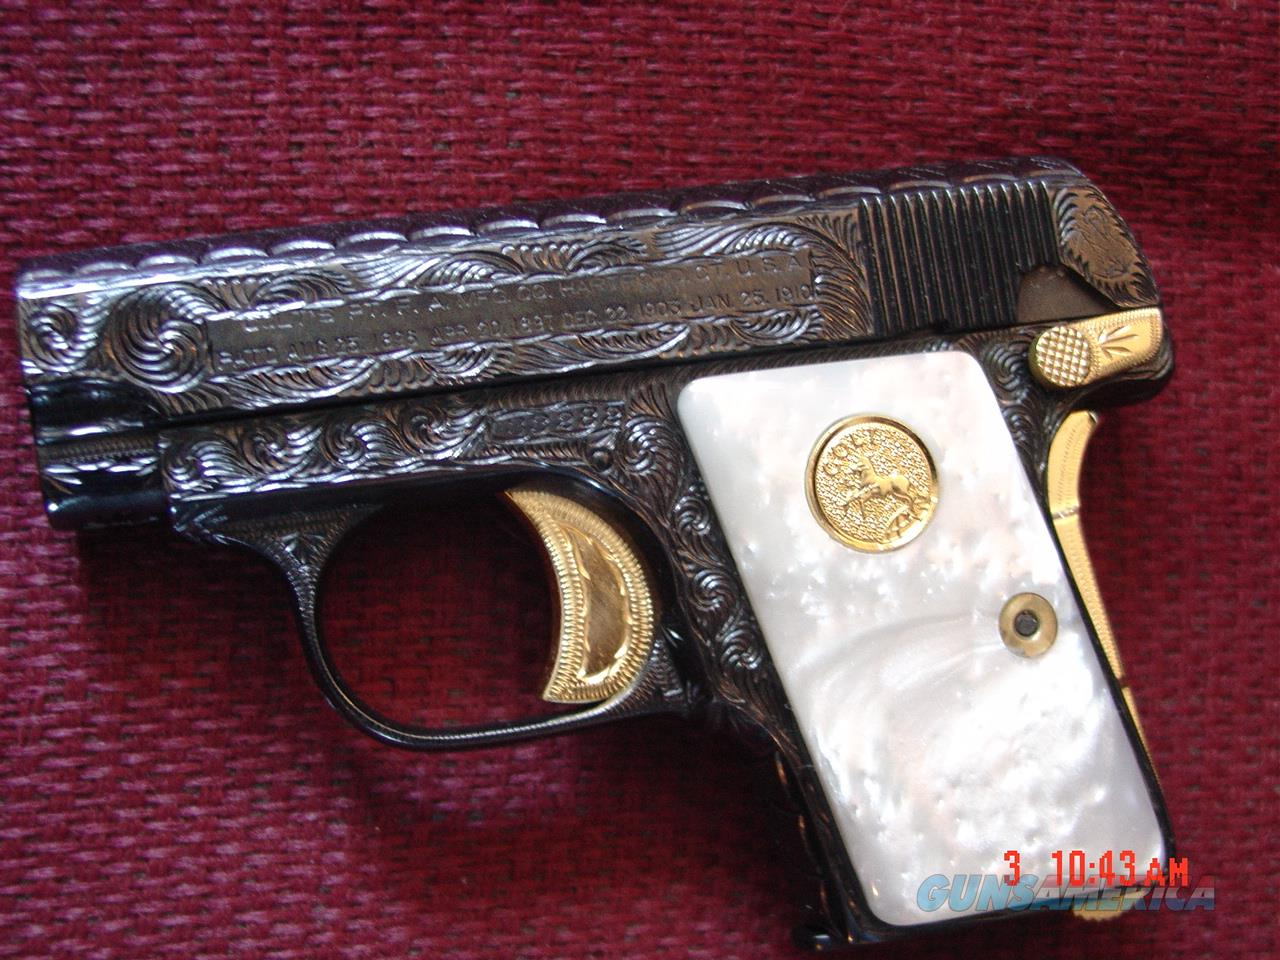 Colt 1908,25 cal,fully engraved by Flannery engraving,in March 2016,blue with 24K accents,Pearlite grips,made in 1915 !!Vest Pocket, awesome showpiece,1 of a kind !!  Guns > Pistols > Colt Automatic Pistols (.25, .32, & .380 cal)